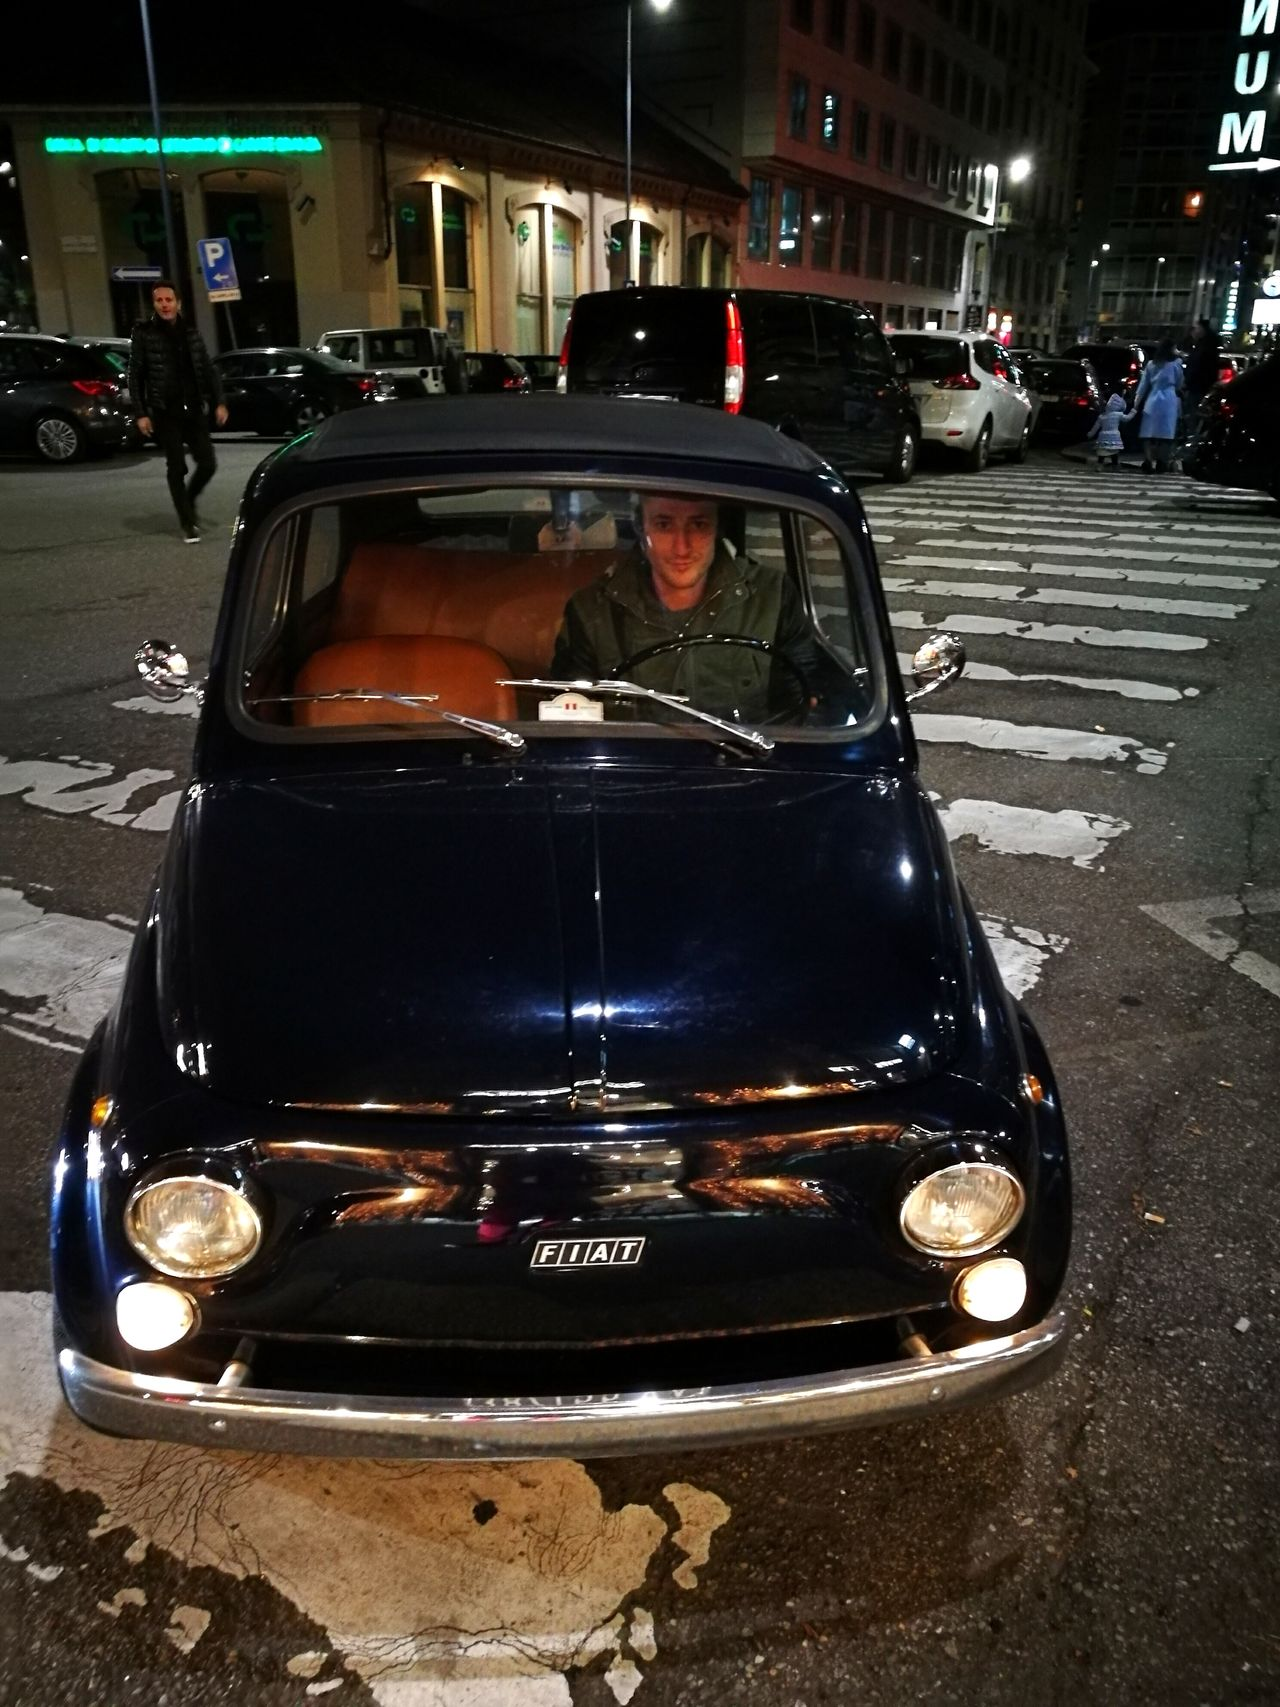 Car Adults Only Transportation Land Vehicle Adult Front View People One Person Men Night City Outdoors Vintage Cars Old Style Dark Blue City Car Small Car Transportation Exploring Style